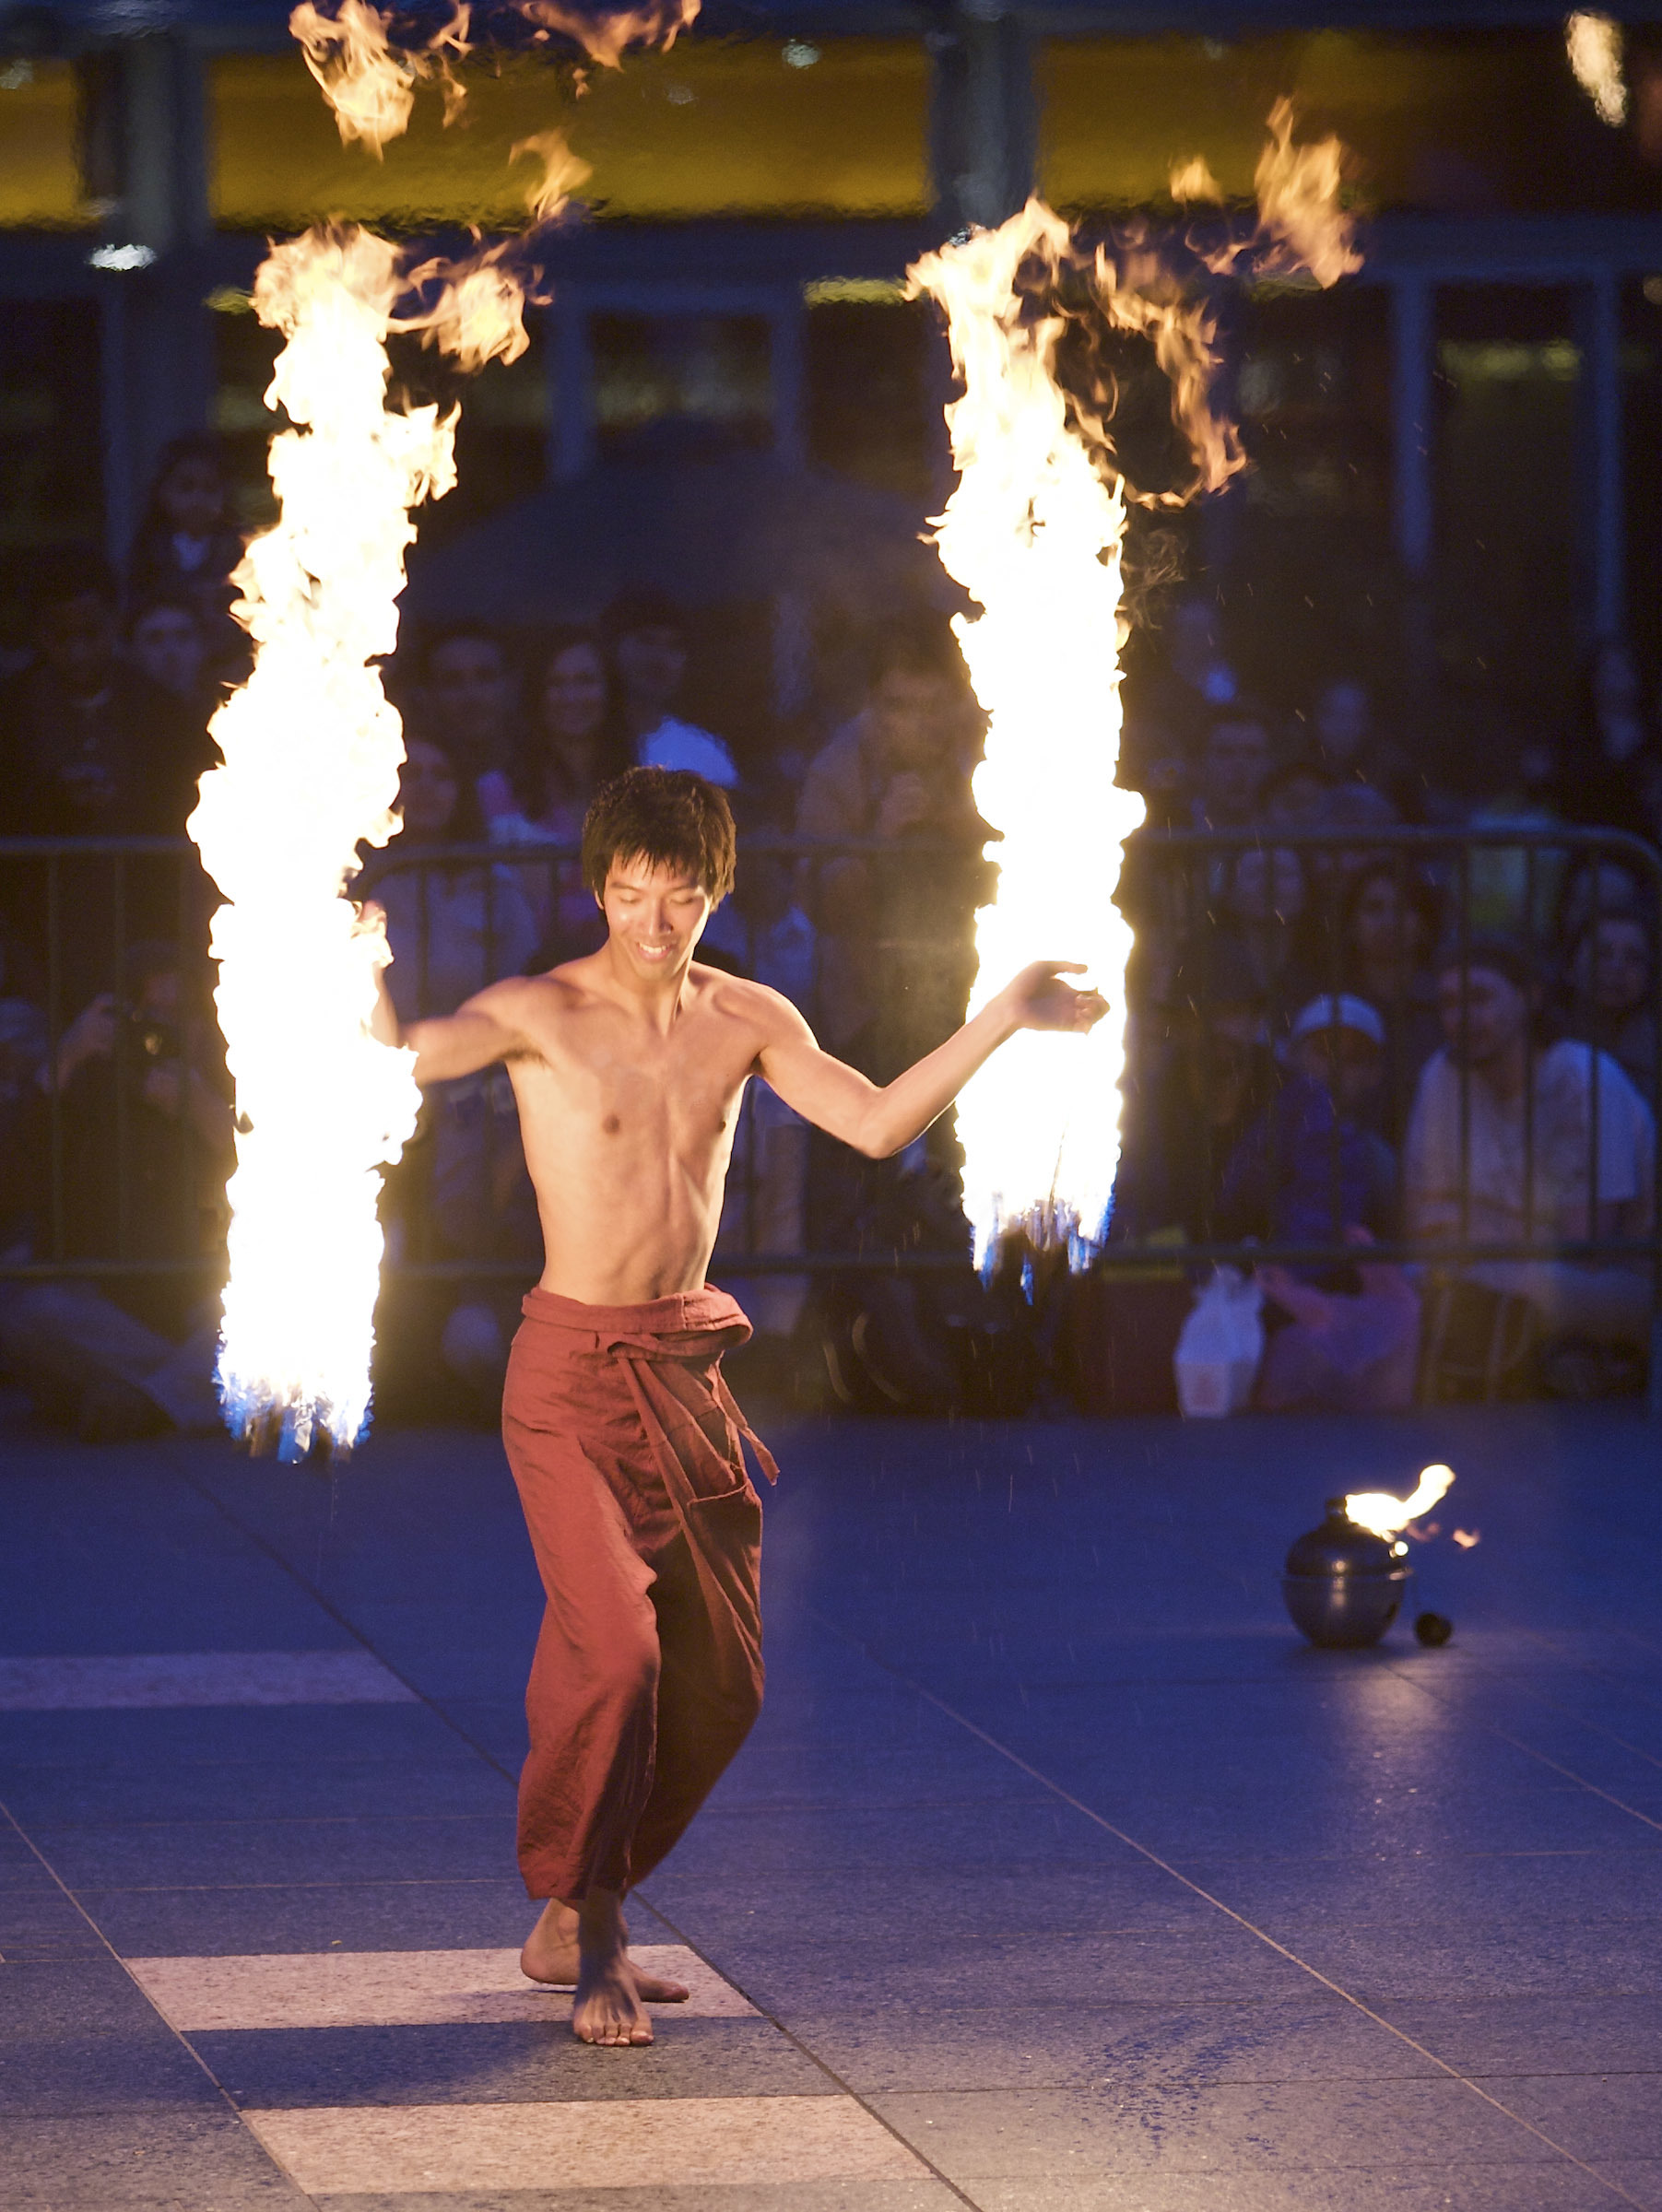 fire Expo dancing flames HD Wallpaper